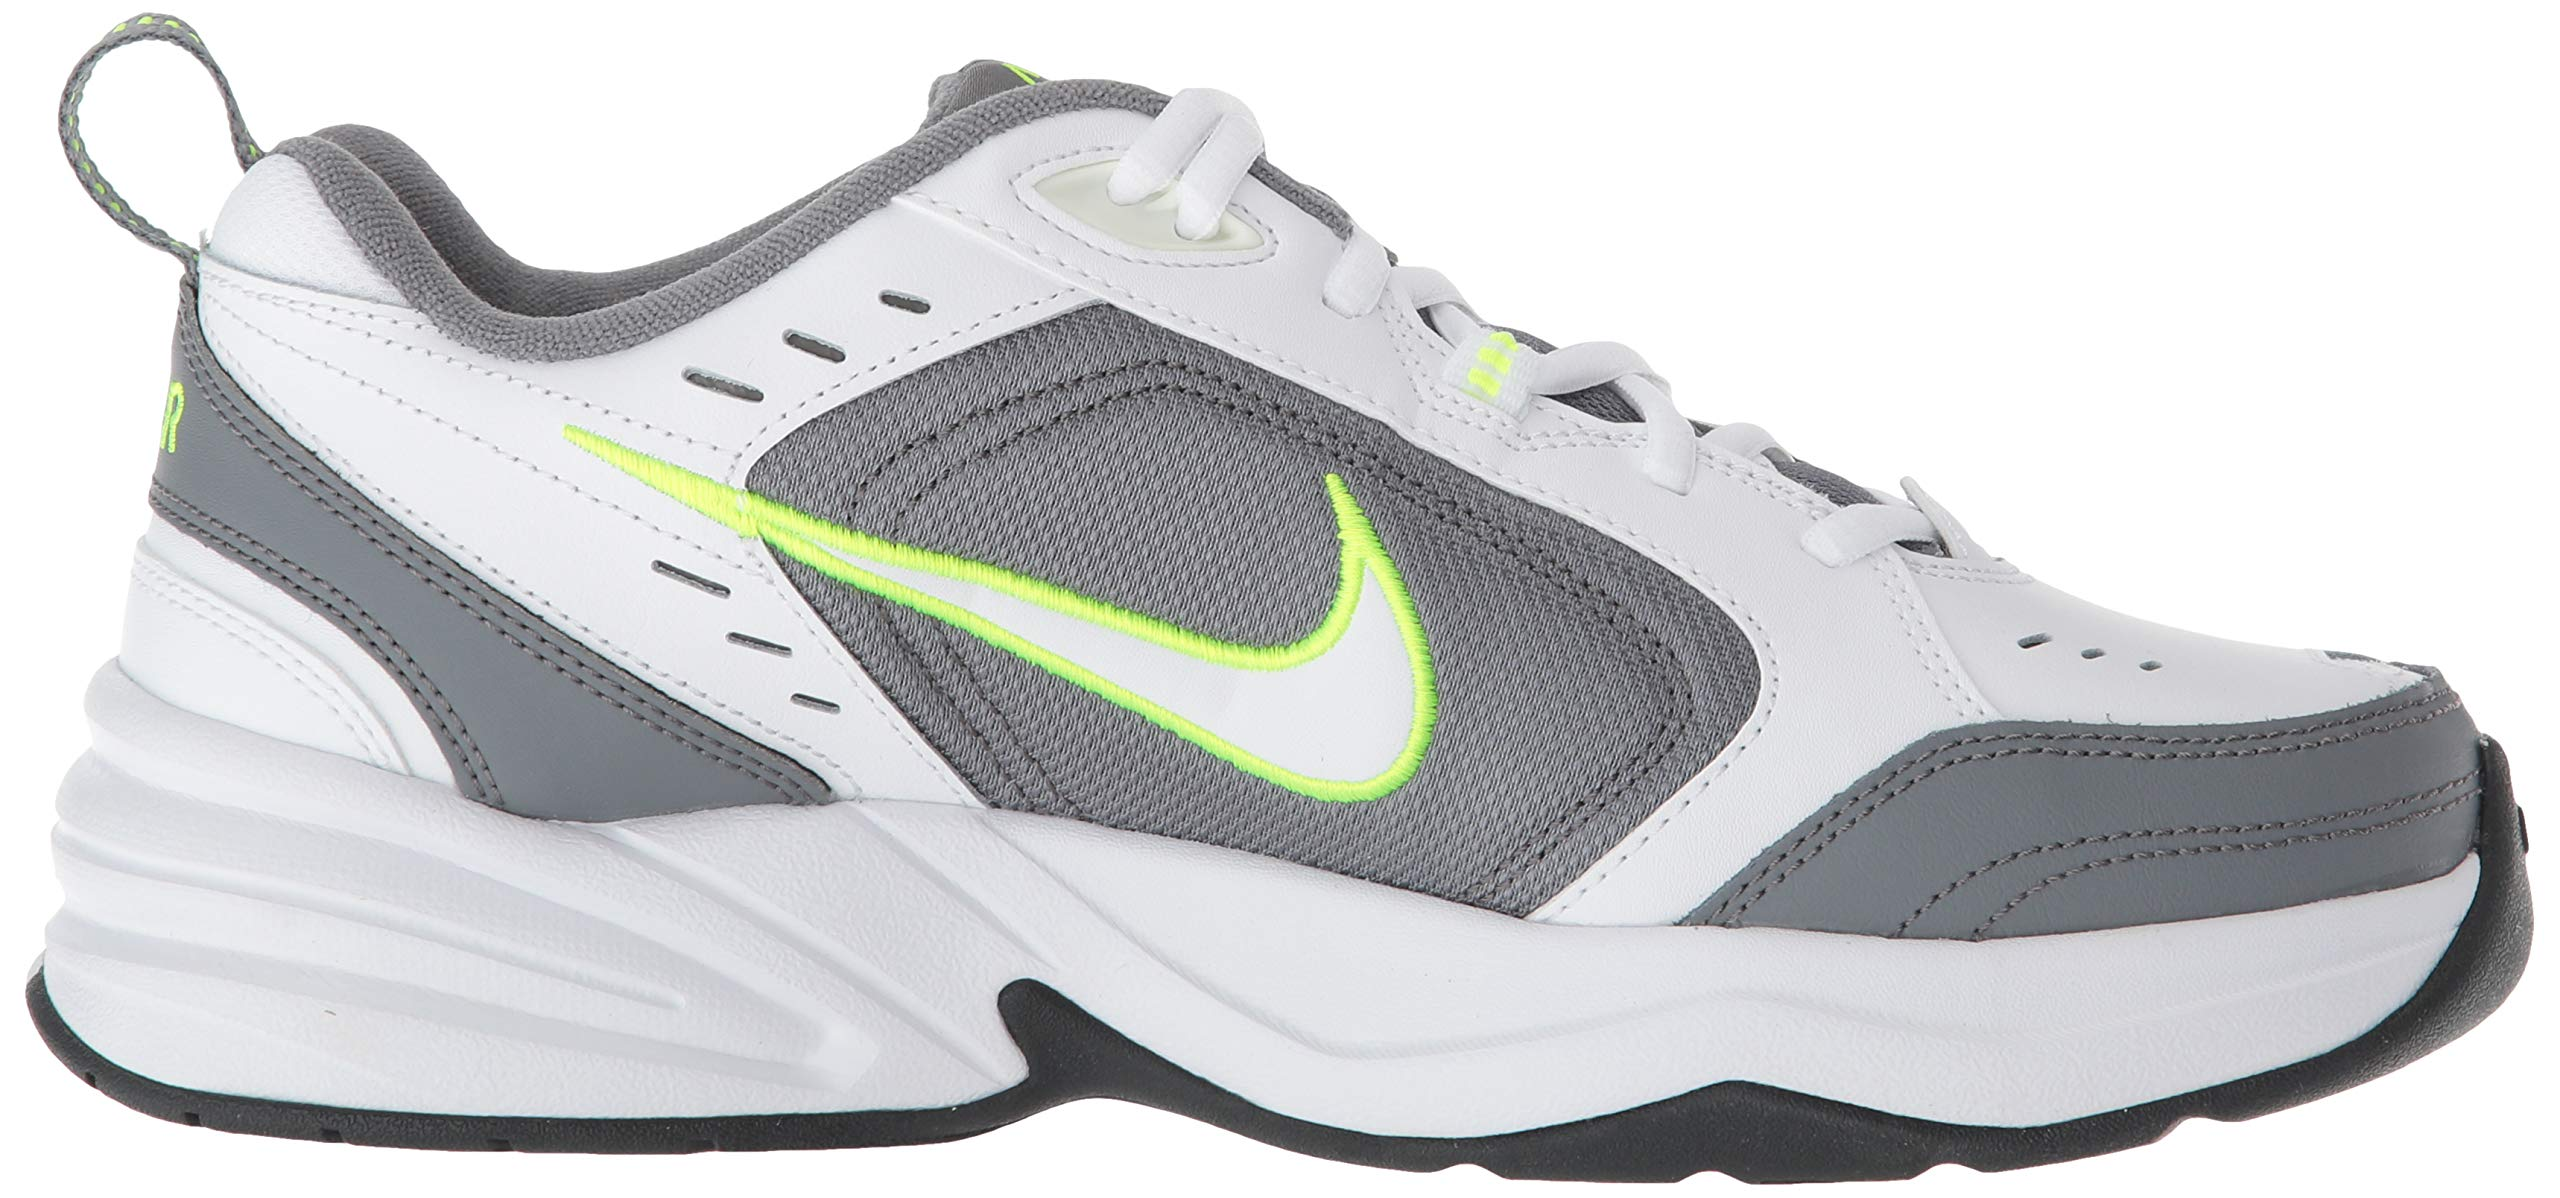 Nike Men's Air Monarch IV Cross Trainer, White-Cool Grey-Anthracite, 6.5 Regular US by Nike (Image #14)